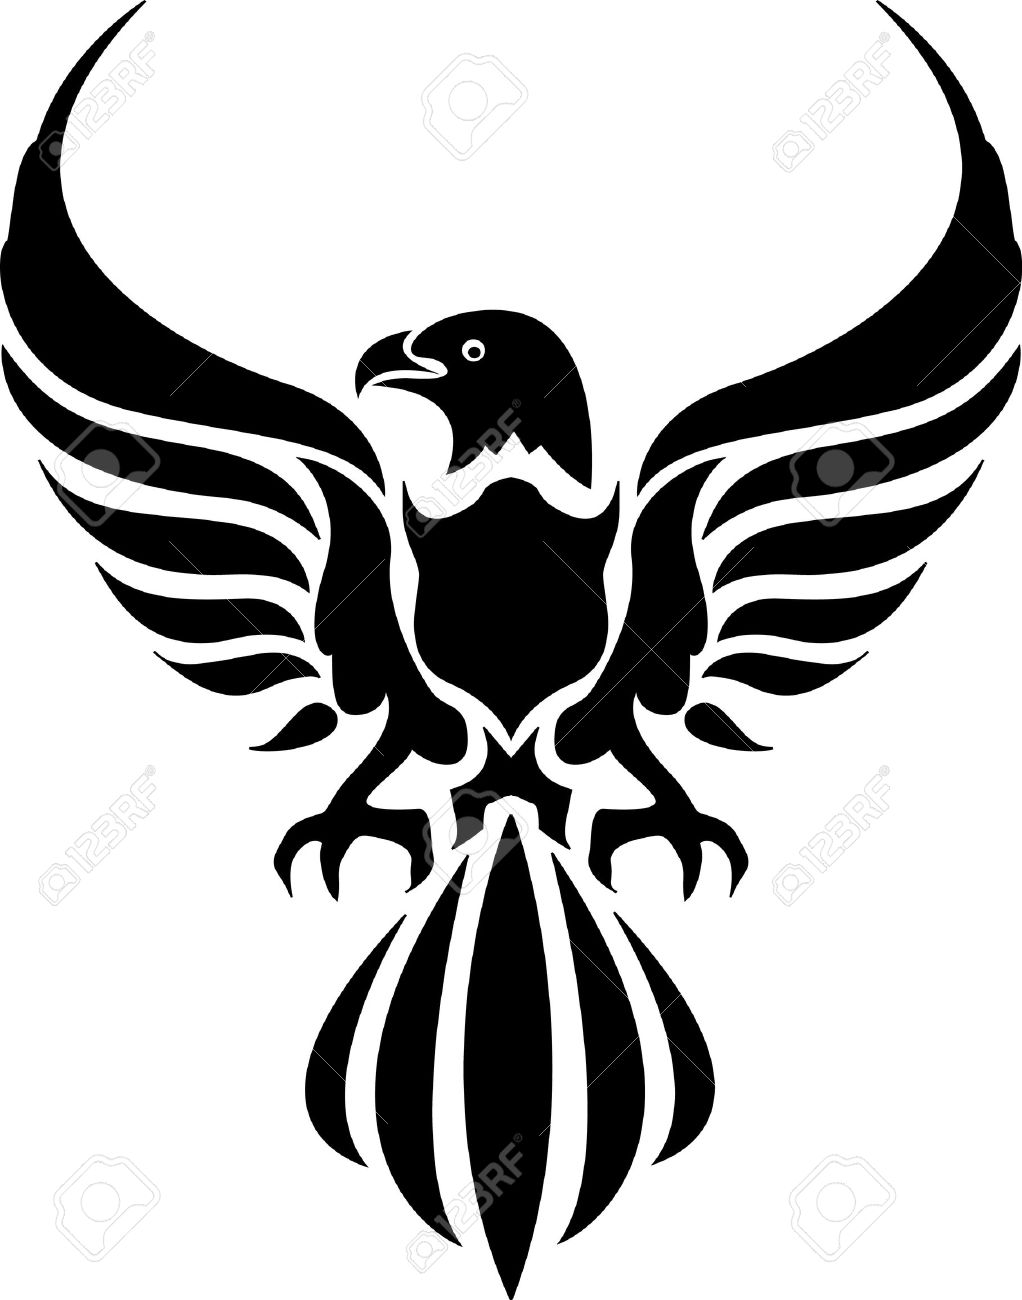 Tribal-Tattoos 14474288-tribal-tattoo-of-an-eagle-Stock-Vector-design